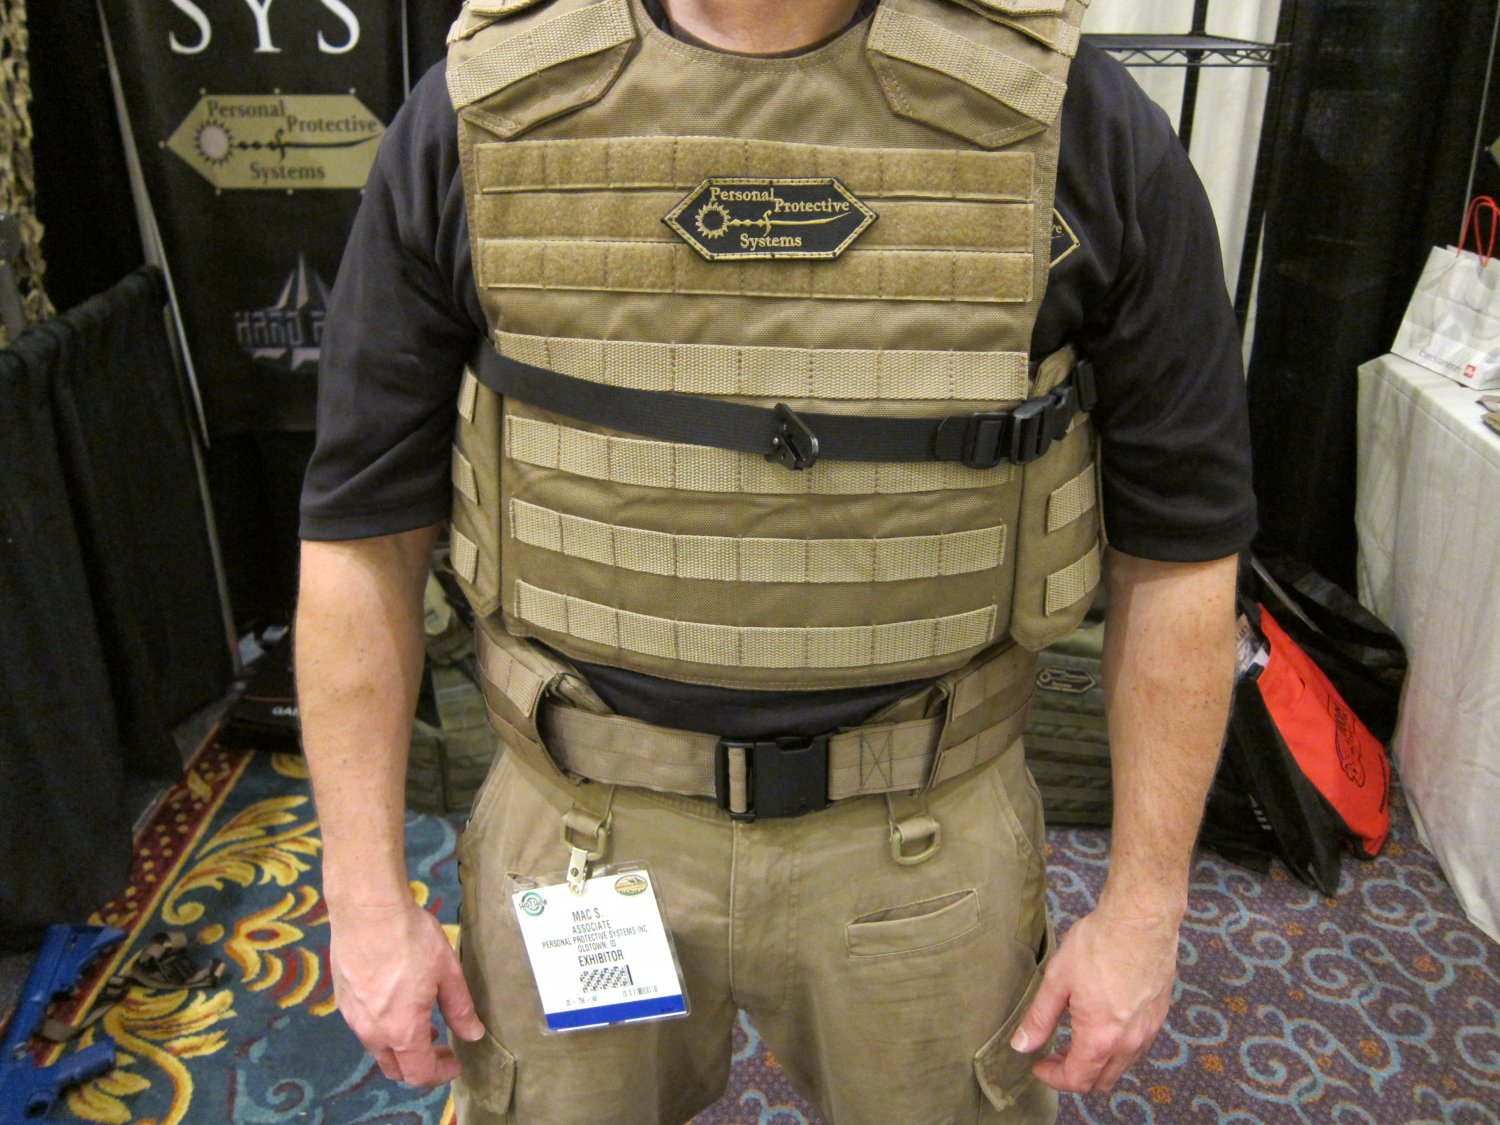 P2_Systems_(P2Sys)_Underarm_Double-Under_Integra-Sling_and_Integra-Belt_with_Integral_Armor_Waist_Supports_(Plastic_Stays)_at_SHOT_Show_2011_3